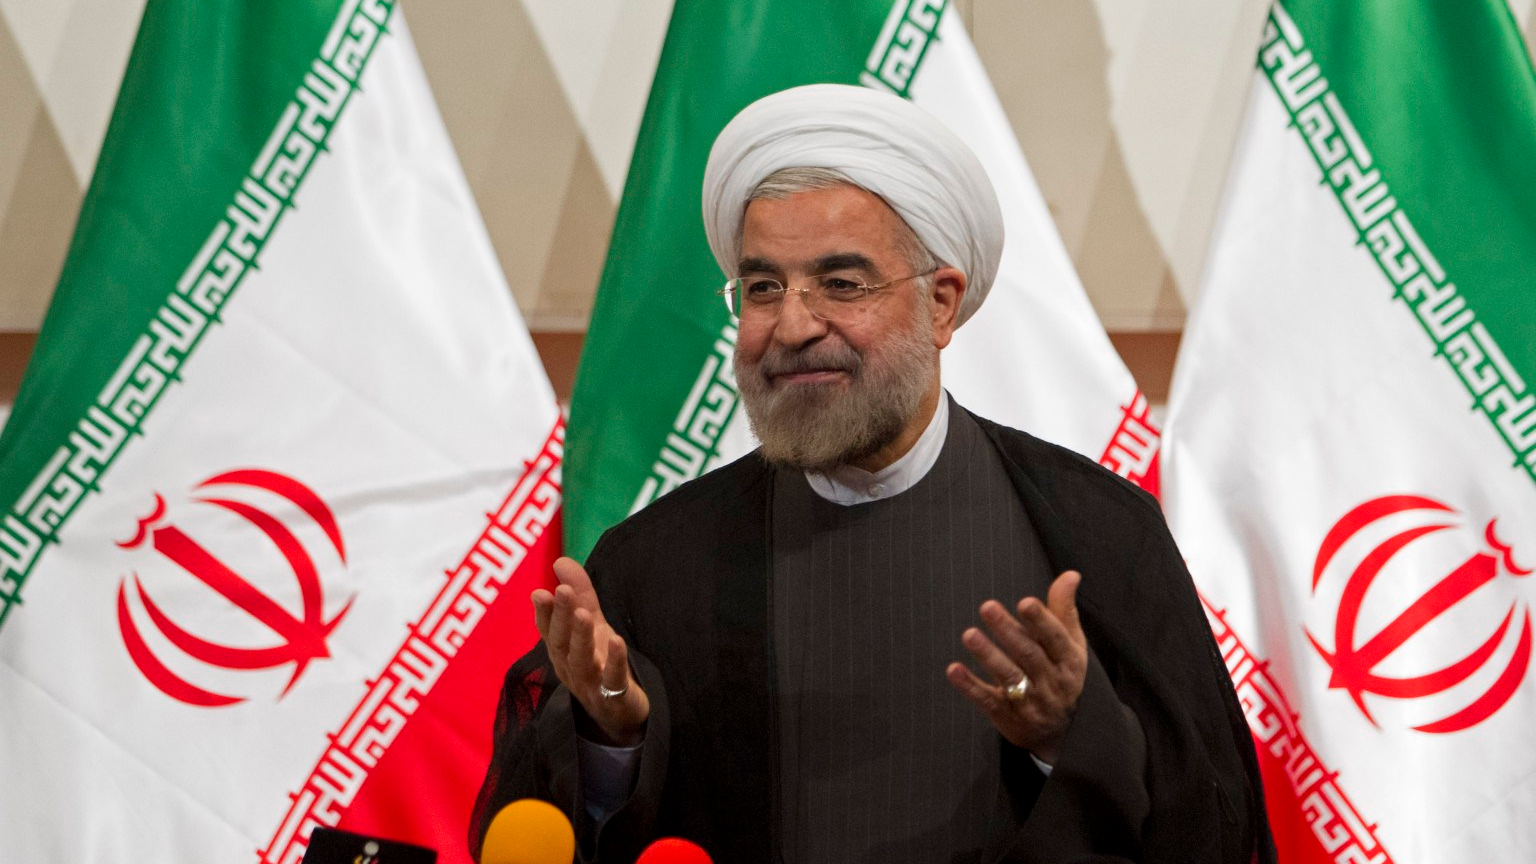 Rouhani – second time President of Iran